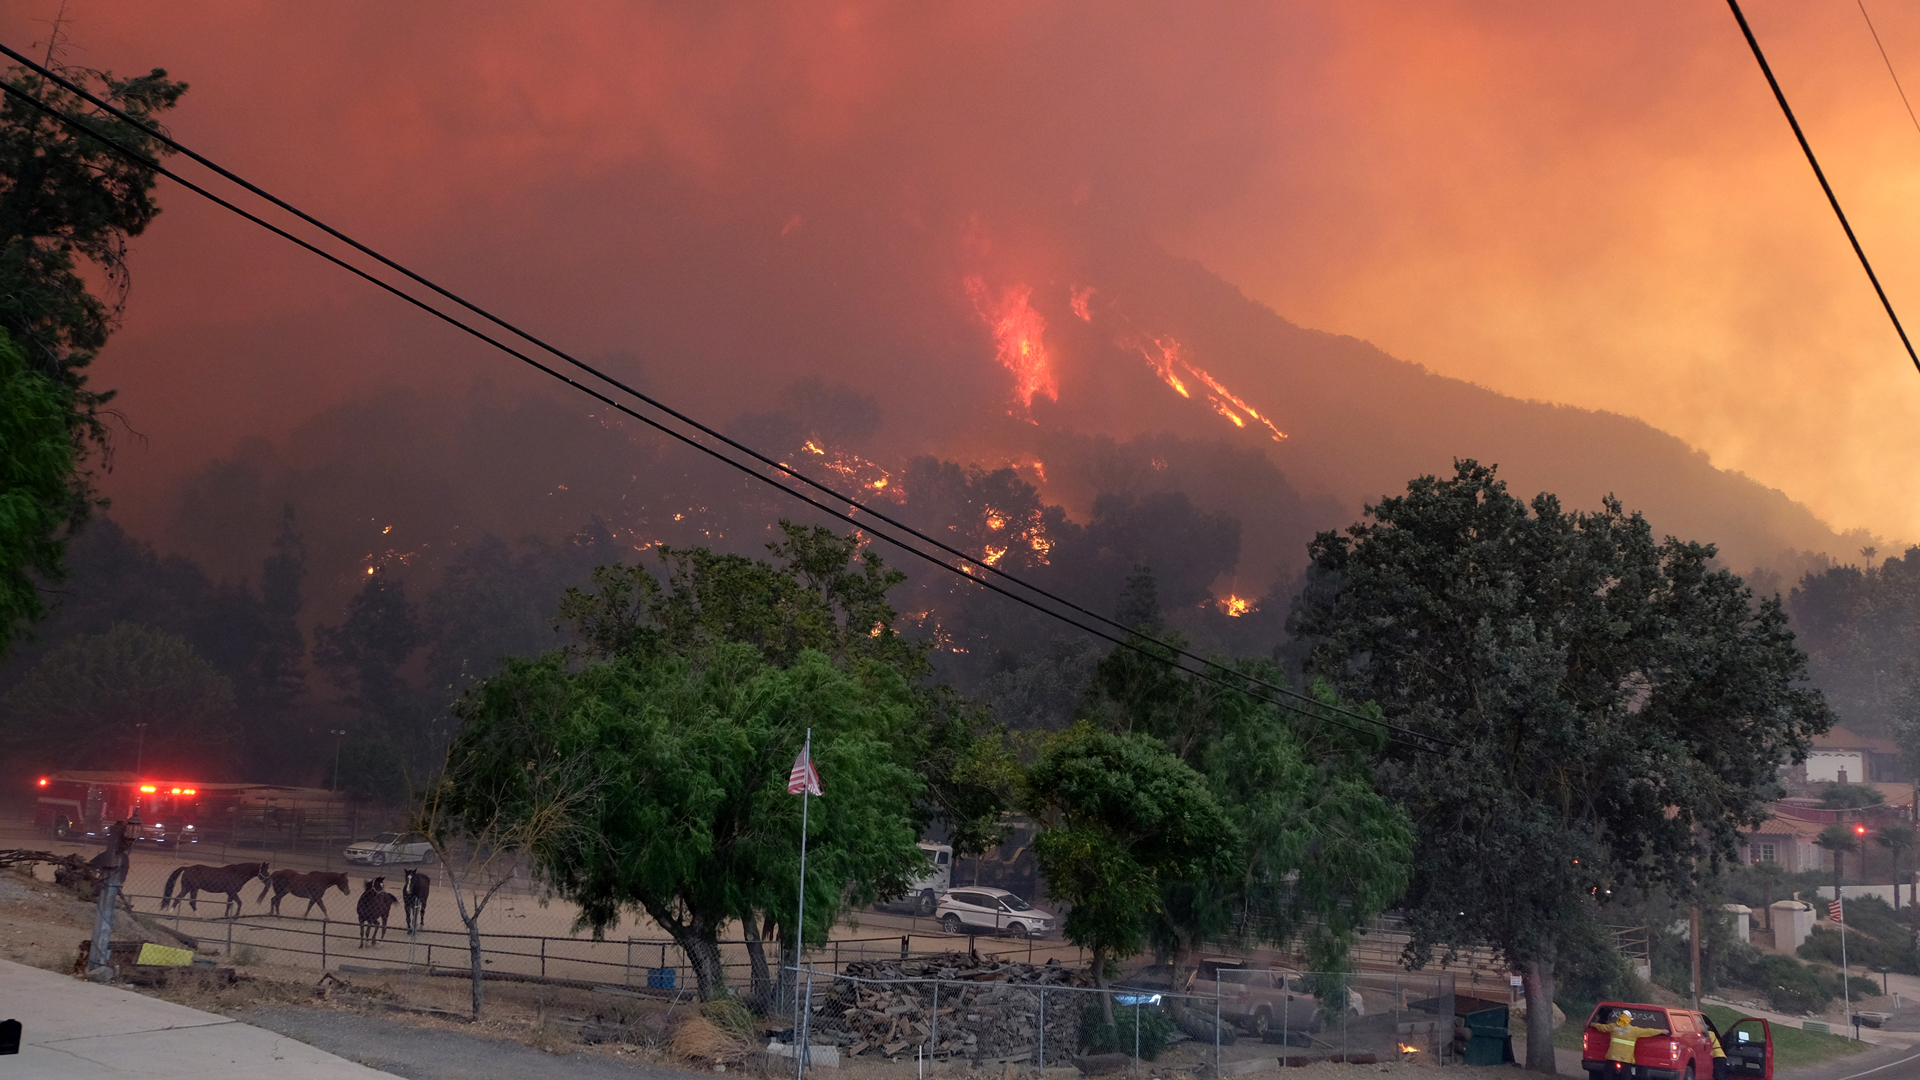 Firefighters work to protect structures as the Woolsey Fire burns near Paramount Ranch on November 9, 2018 in Agoura Hills. (Credit: Matthew Simmons/Getty Images)